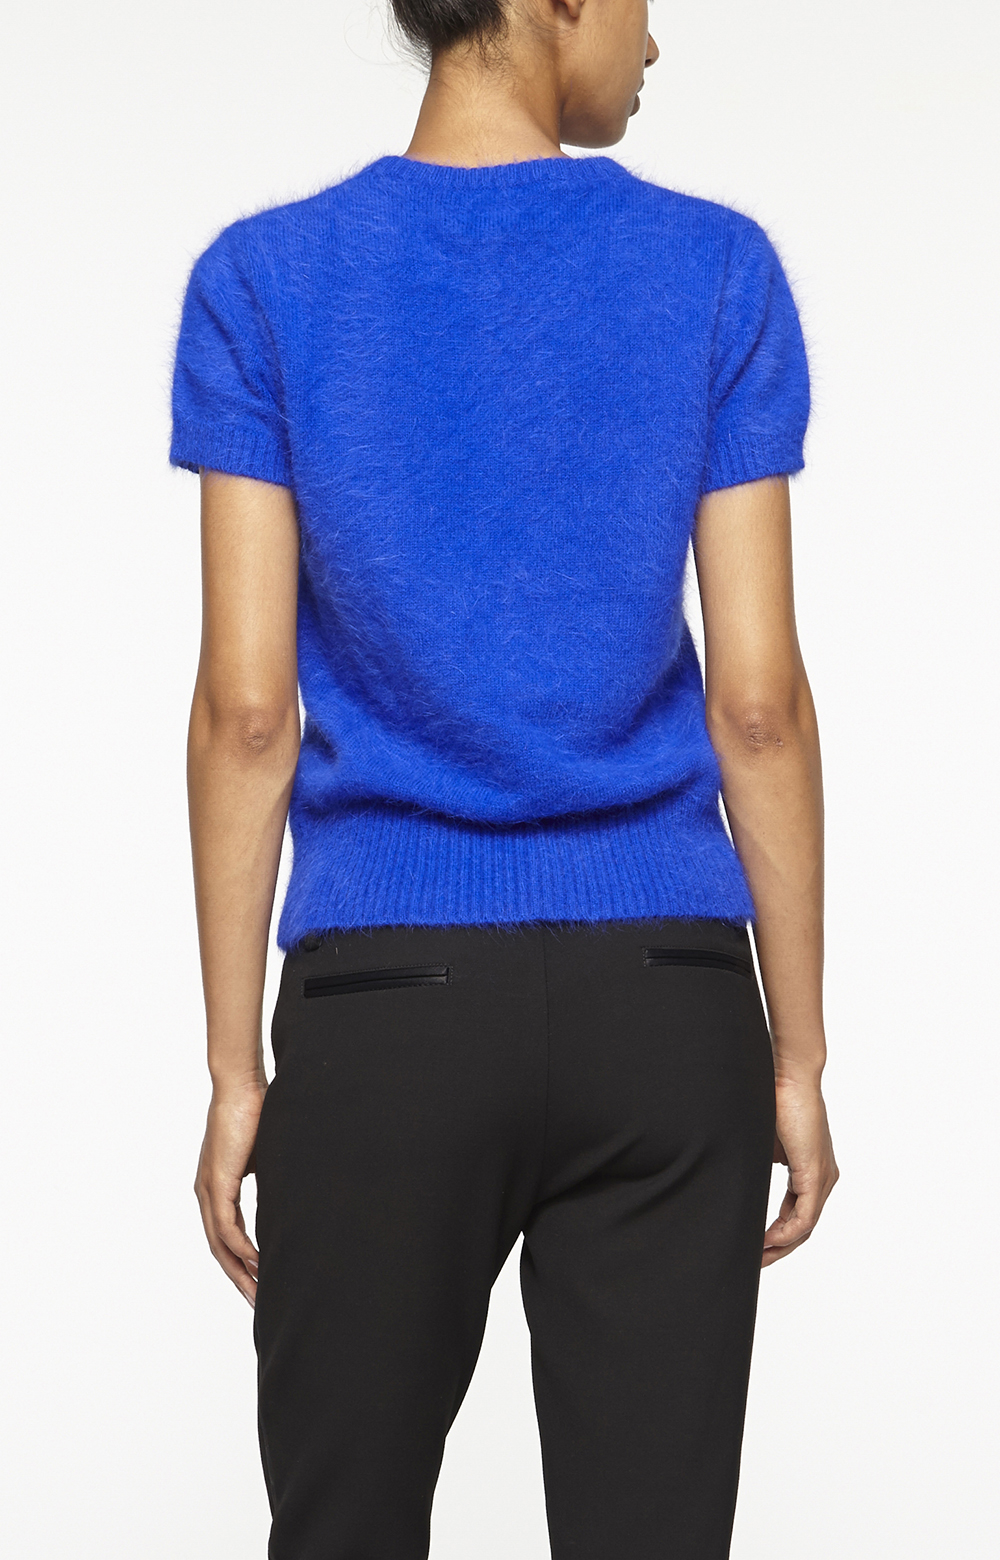 Nicole miller Angora Short Sleeve Sweater in Blue | Lyst